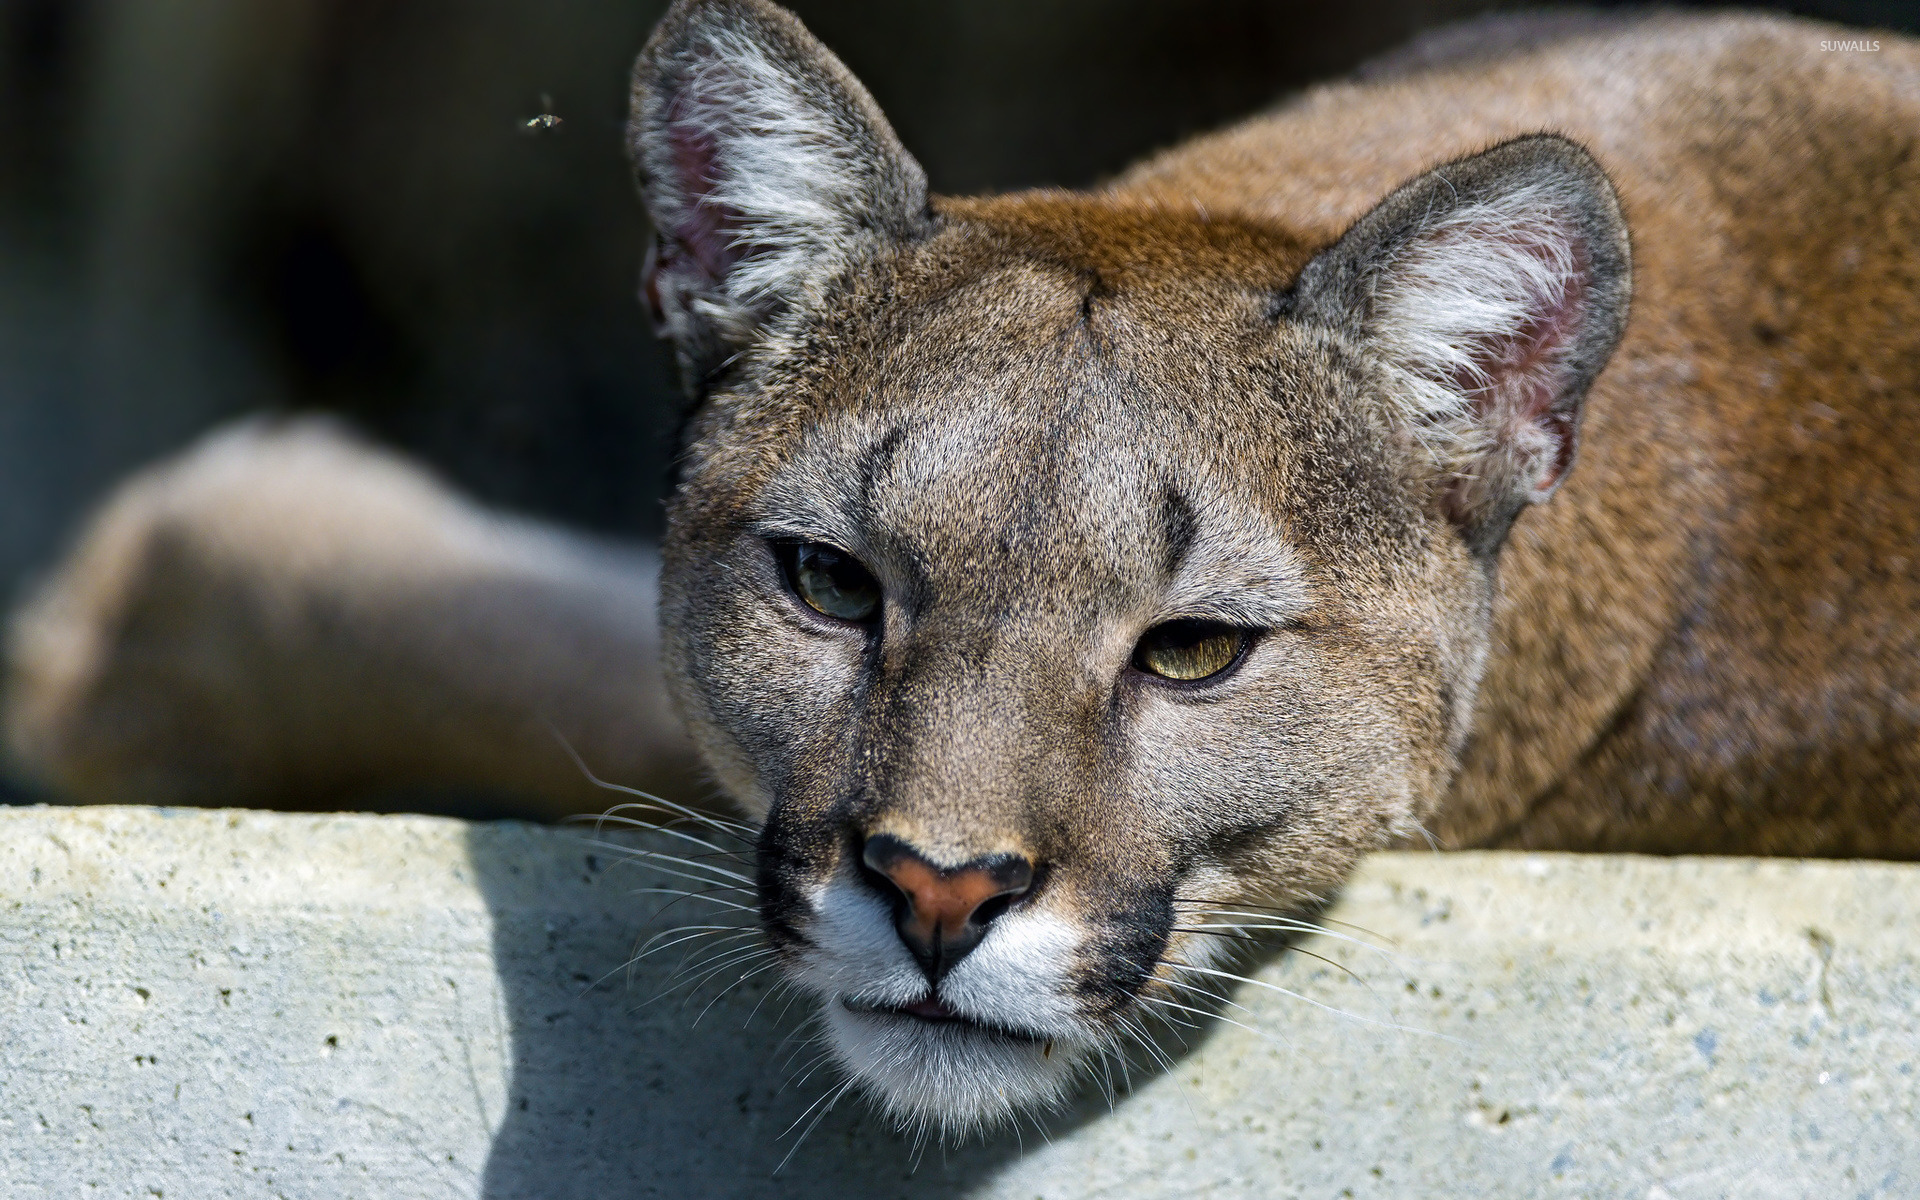 cougar resting on a stone close-up wallpaper - animal wallpapers